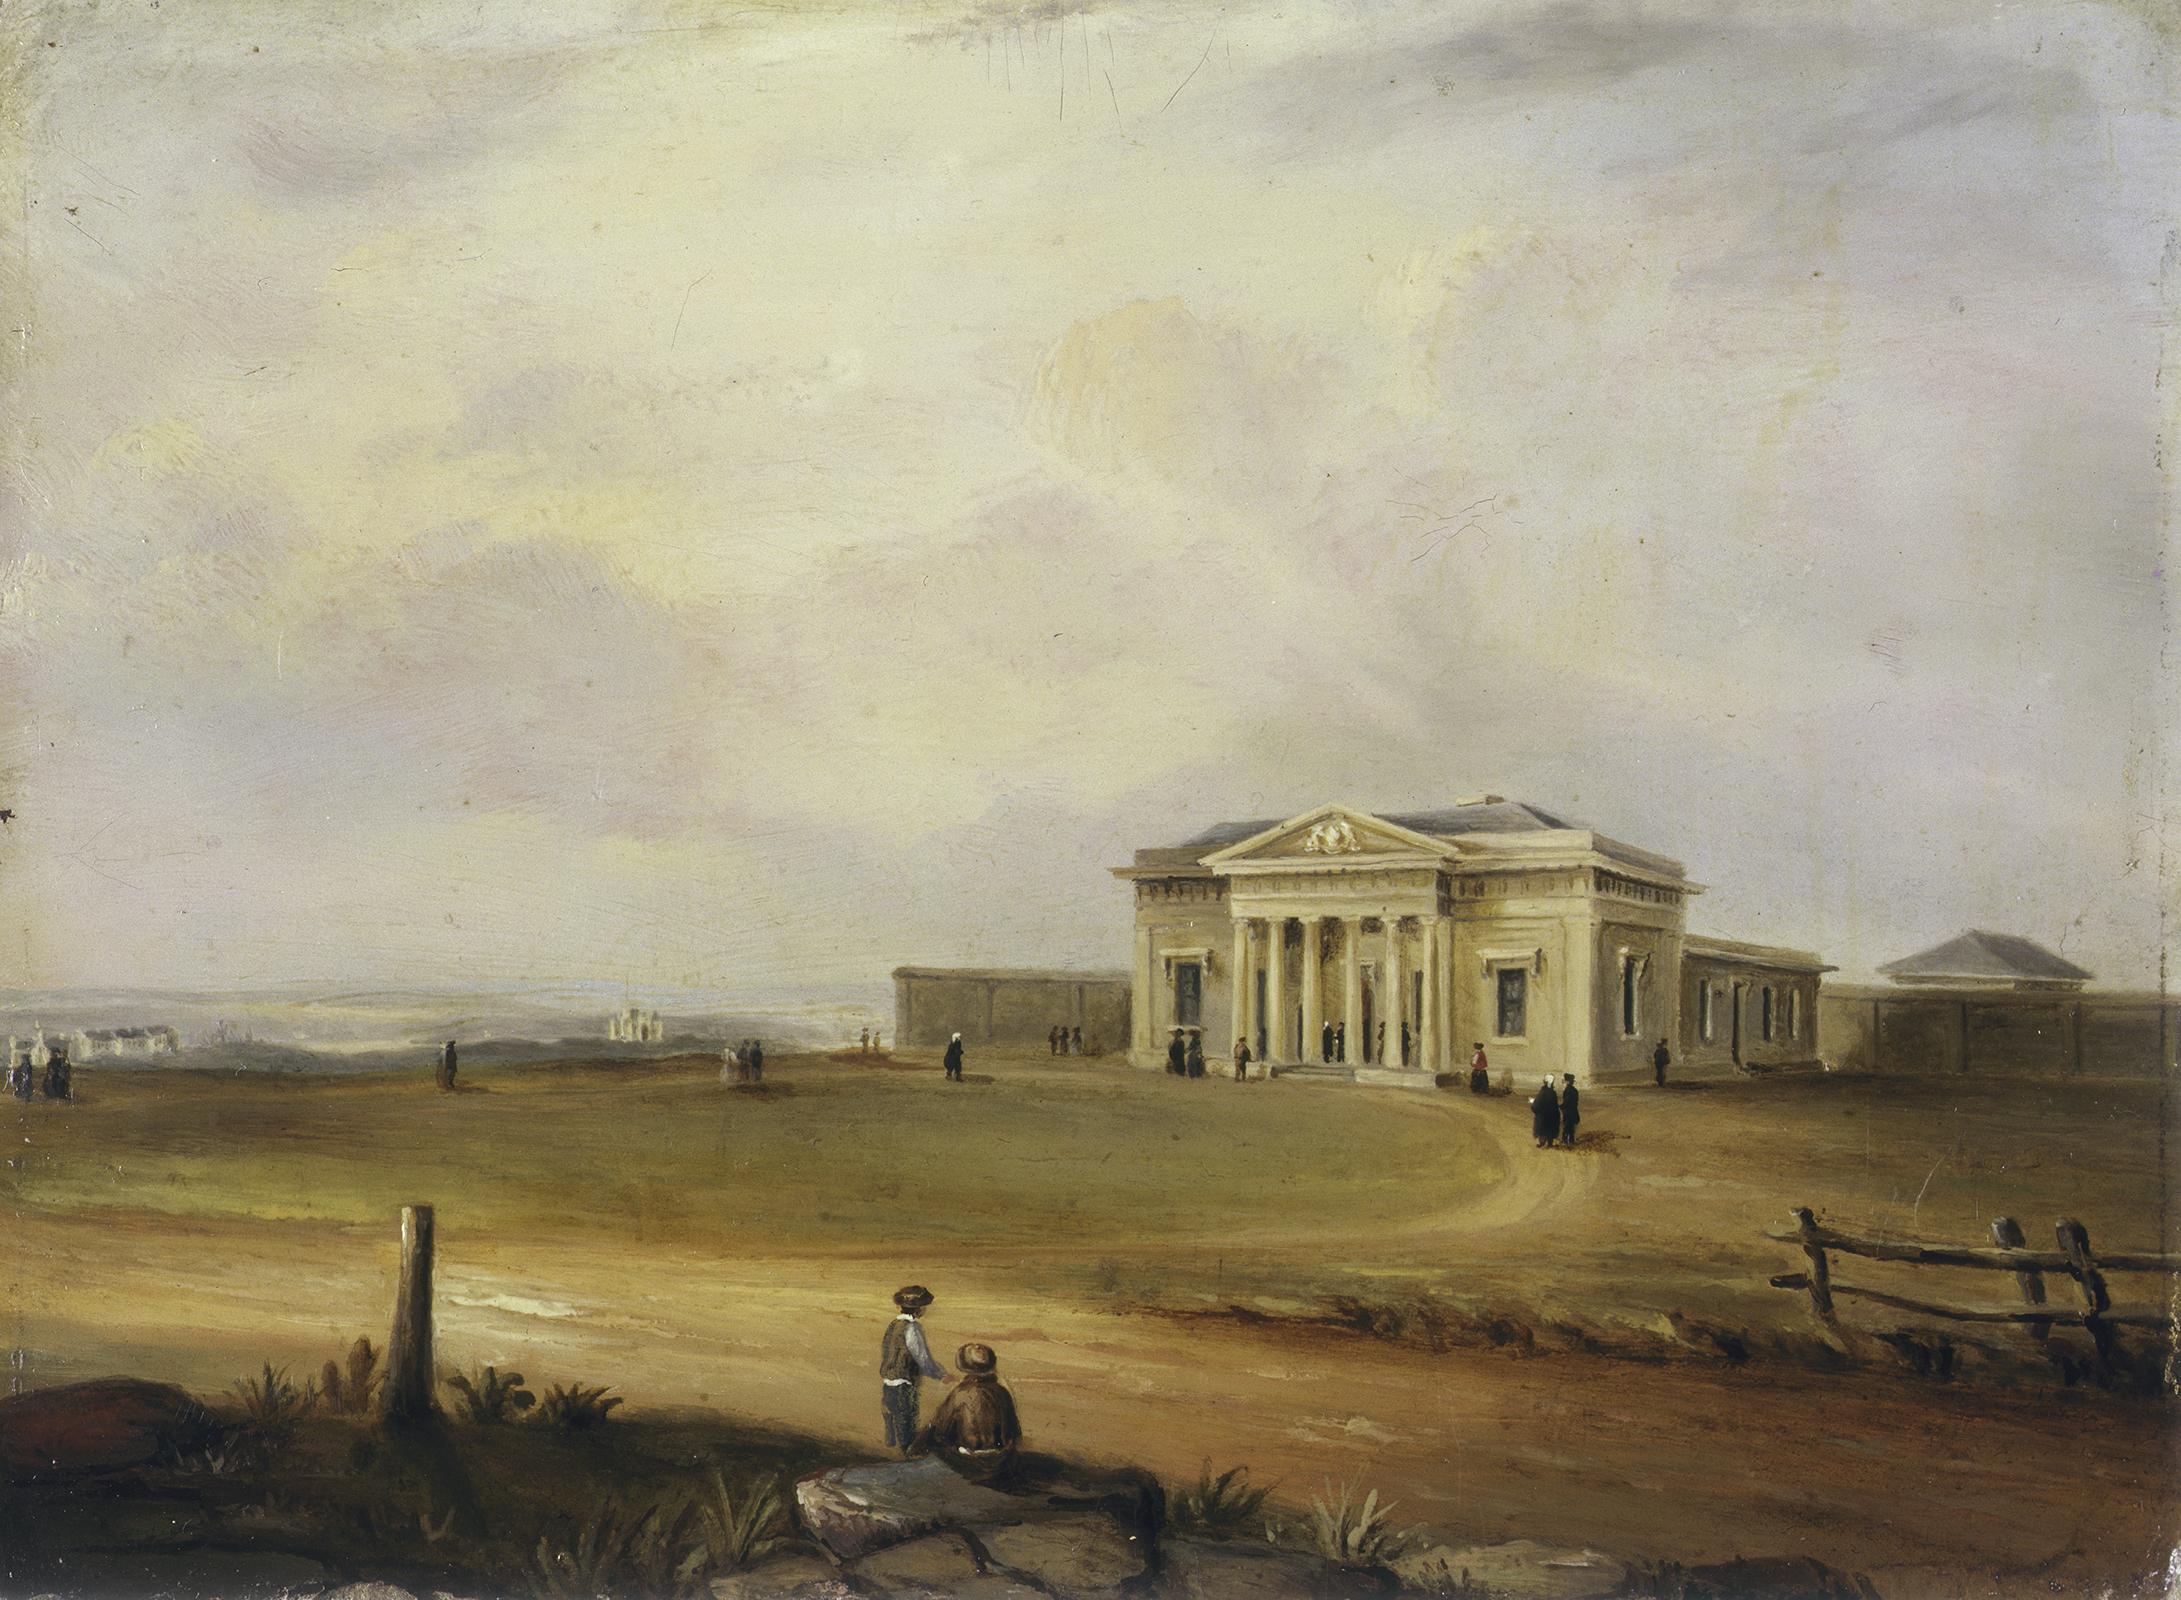 Oil painting of a grand sandstone building with various people on the forecourt including a wigged solicitor. In the background, two other large buildings appear on the otherwise empty country landscape.